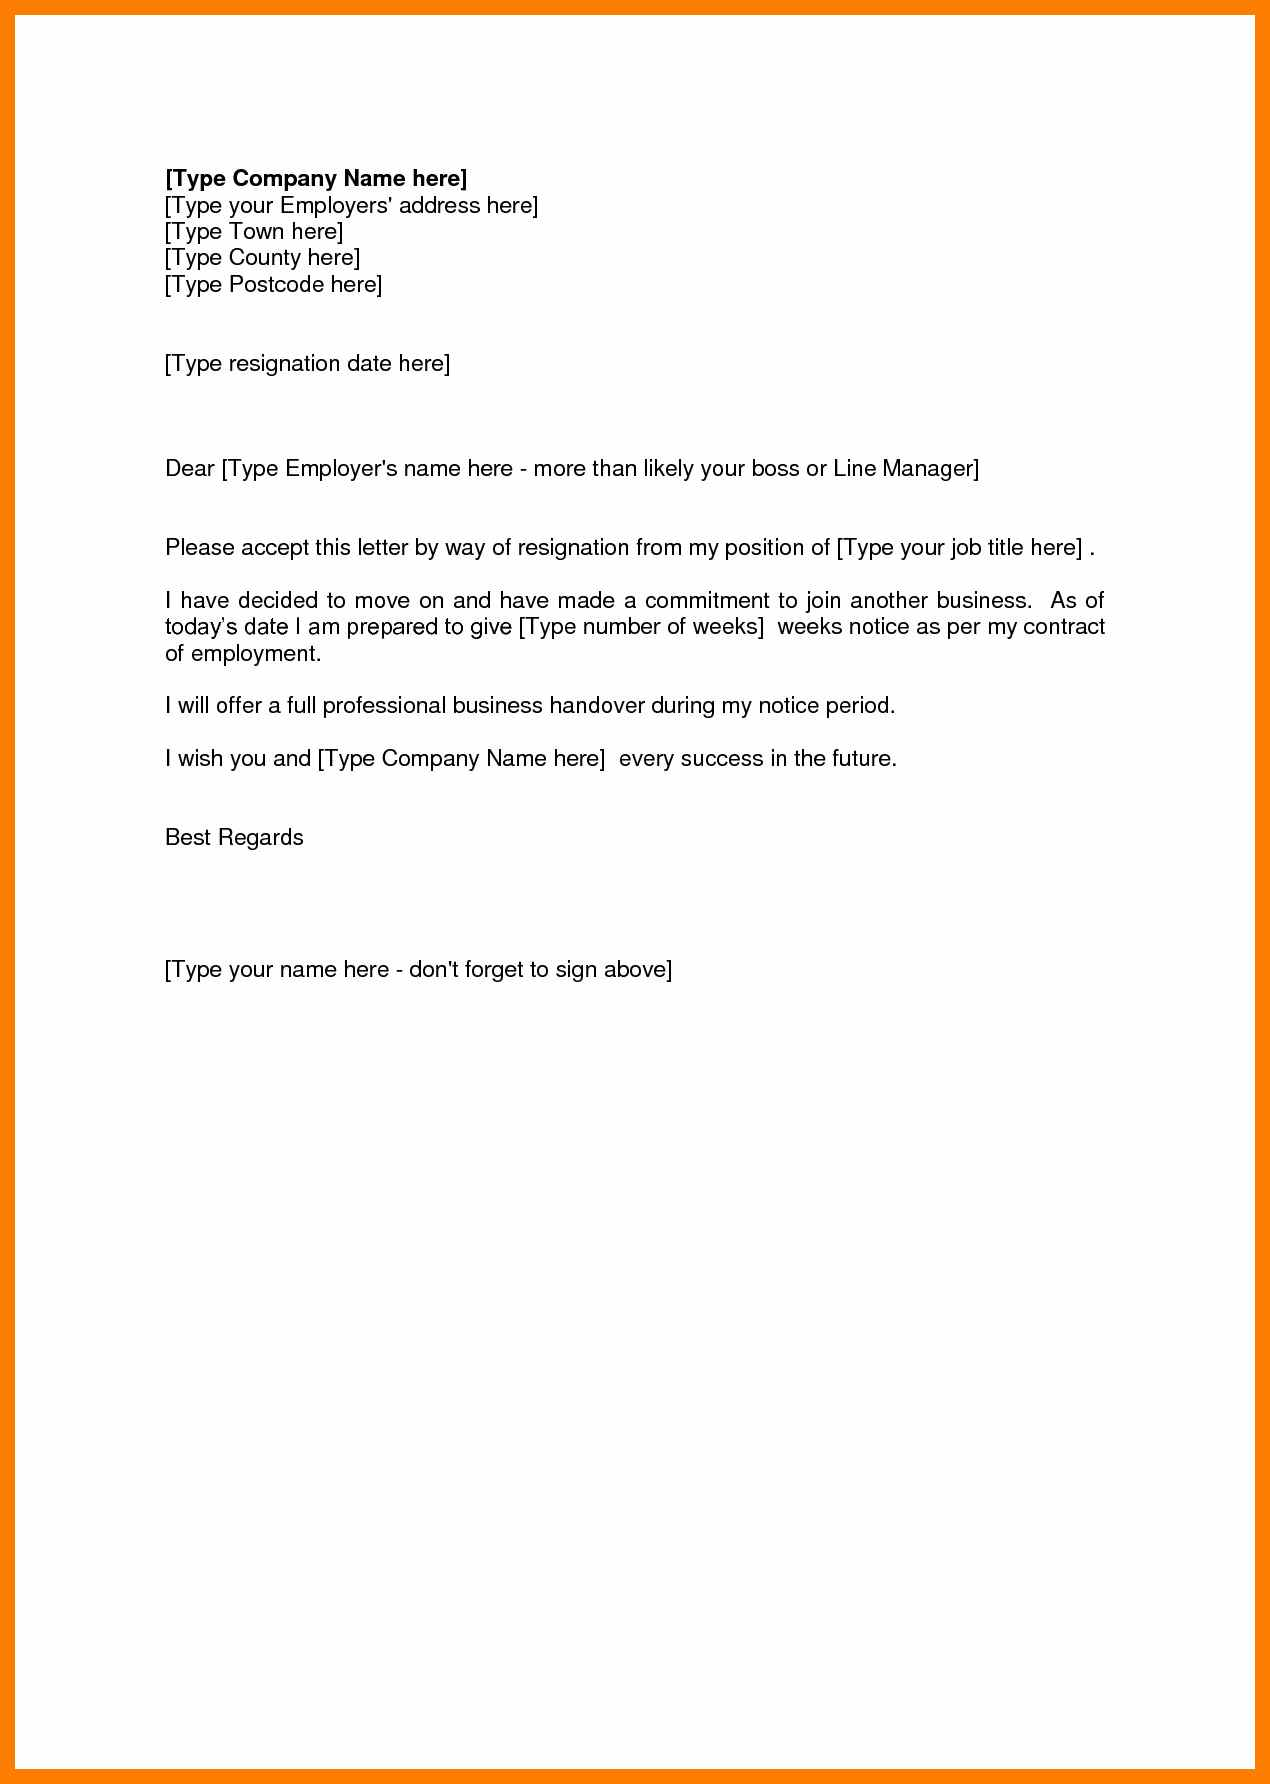 Sample resignation letter template collection letter templates sample resignation letter template sample notice resignation good resume format professional letter spiritdancerdesigns Gallery